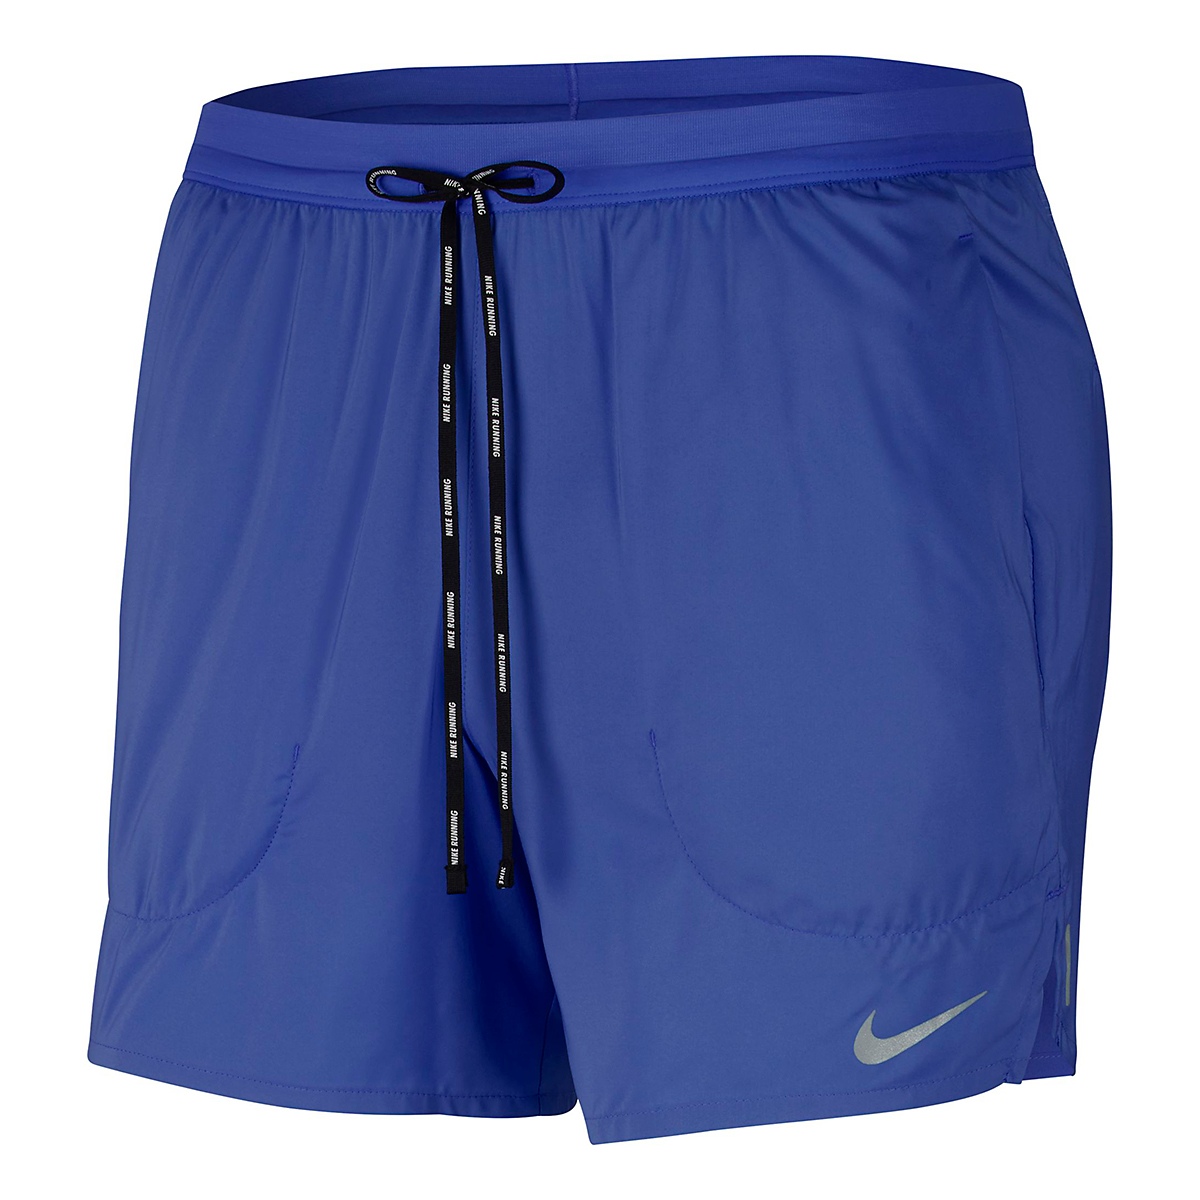 """Men's Nike Flex Stride 5"""" Brief Running Shorts - Color: Astronomy Blue - Size: S, Astronomy Blue, large, image 3"""